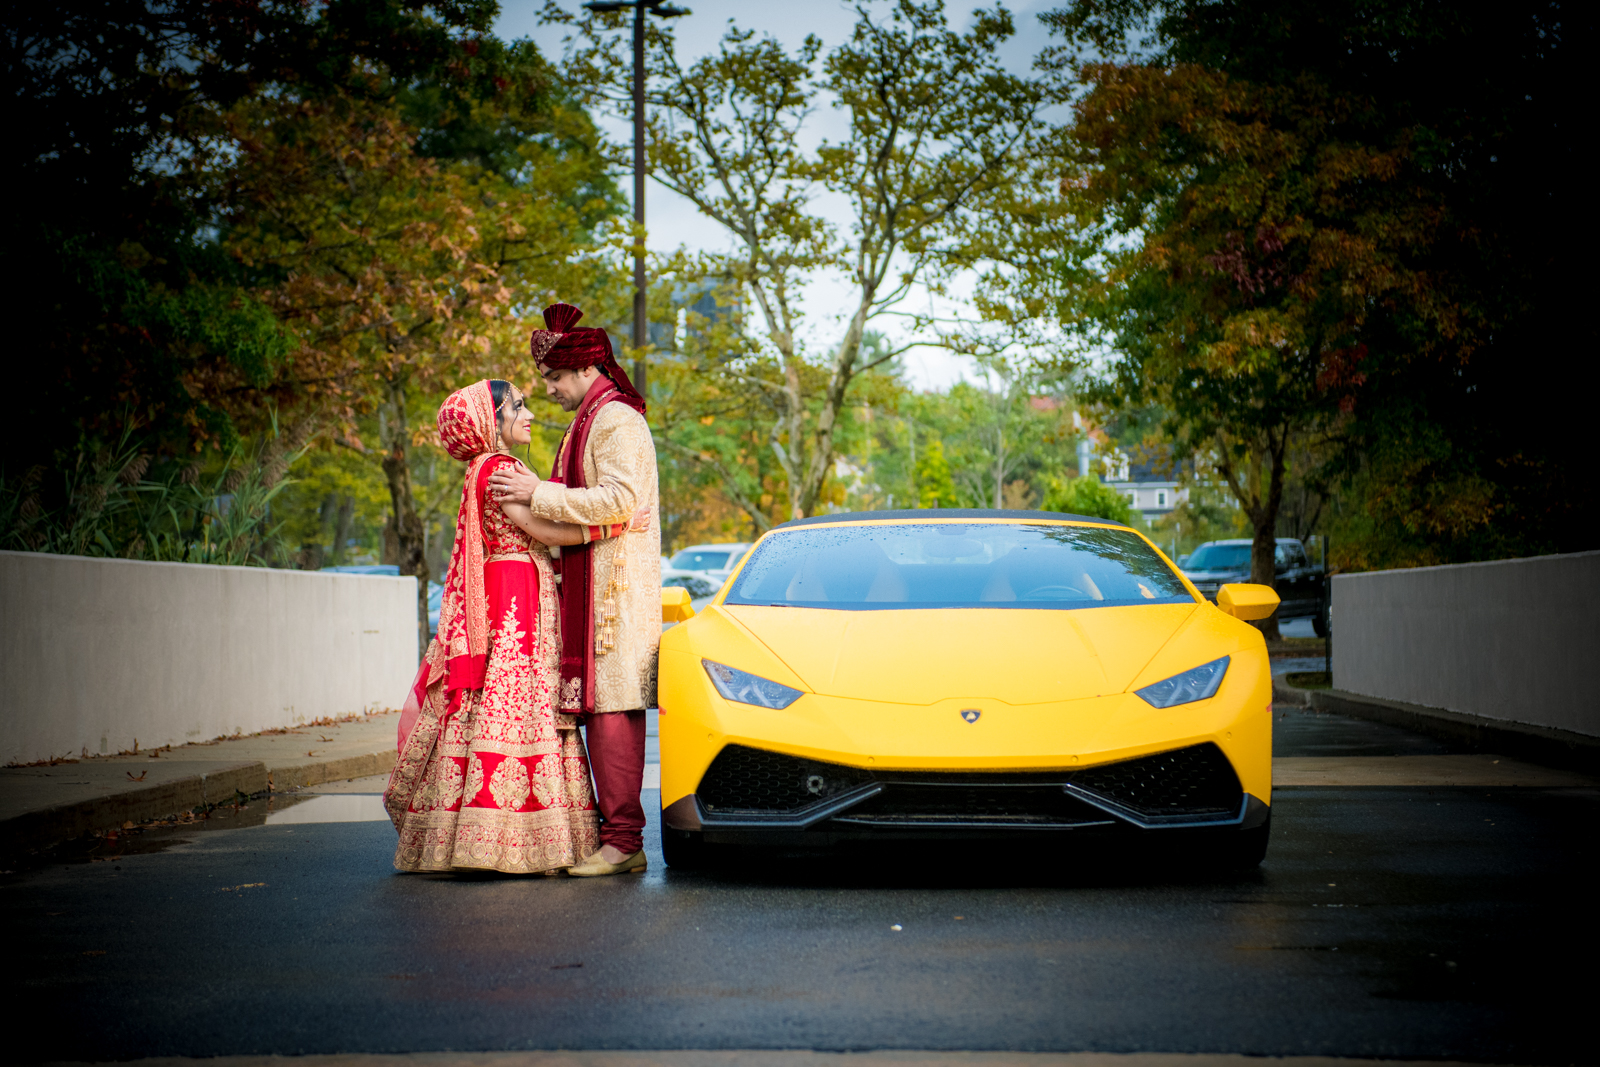 boston_indian_wedding.jpg